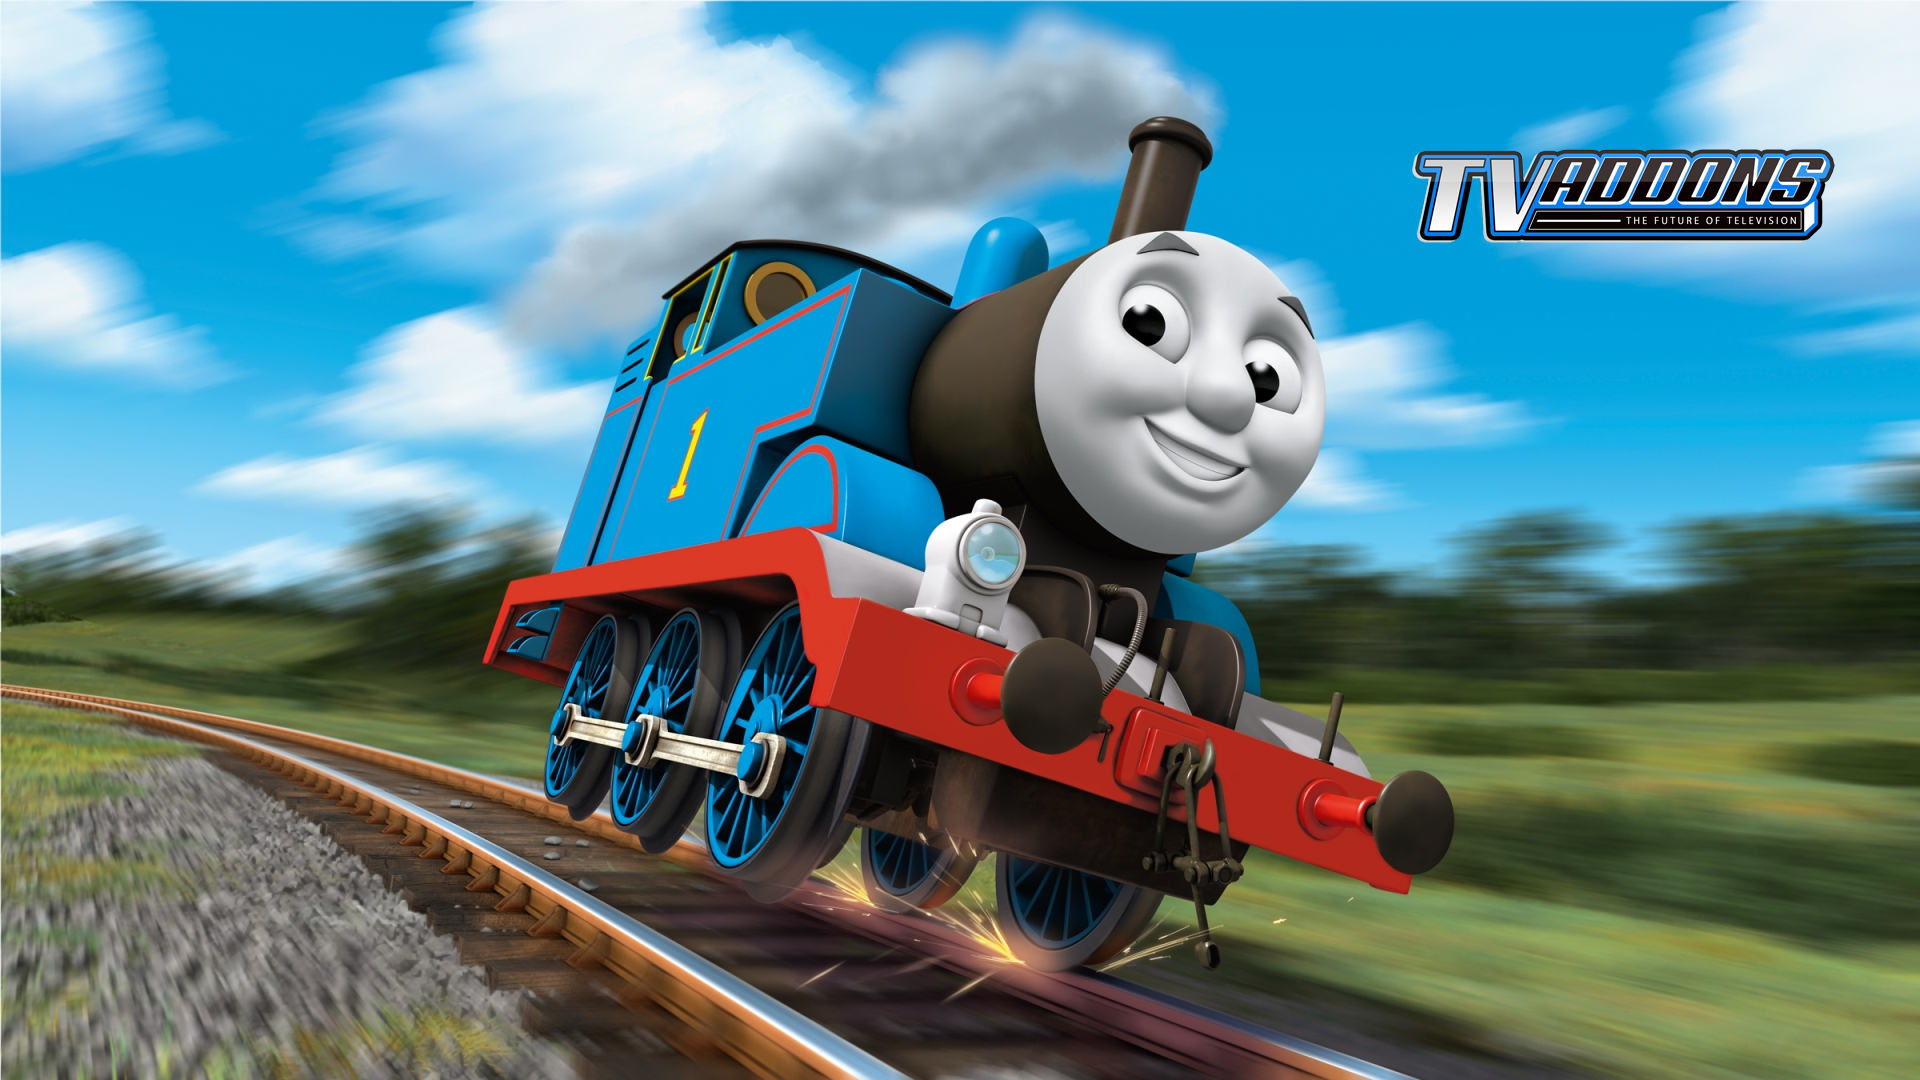 Thomas and Friends fanart